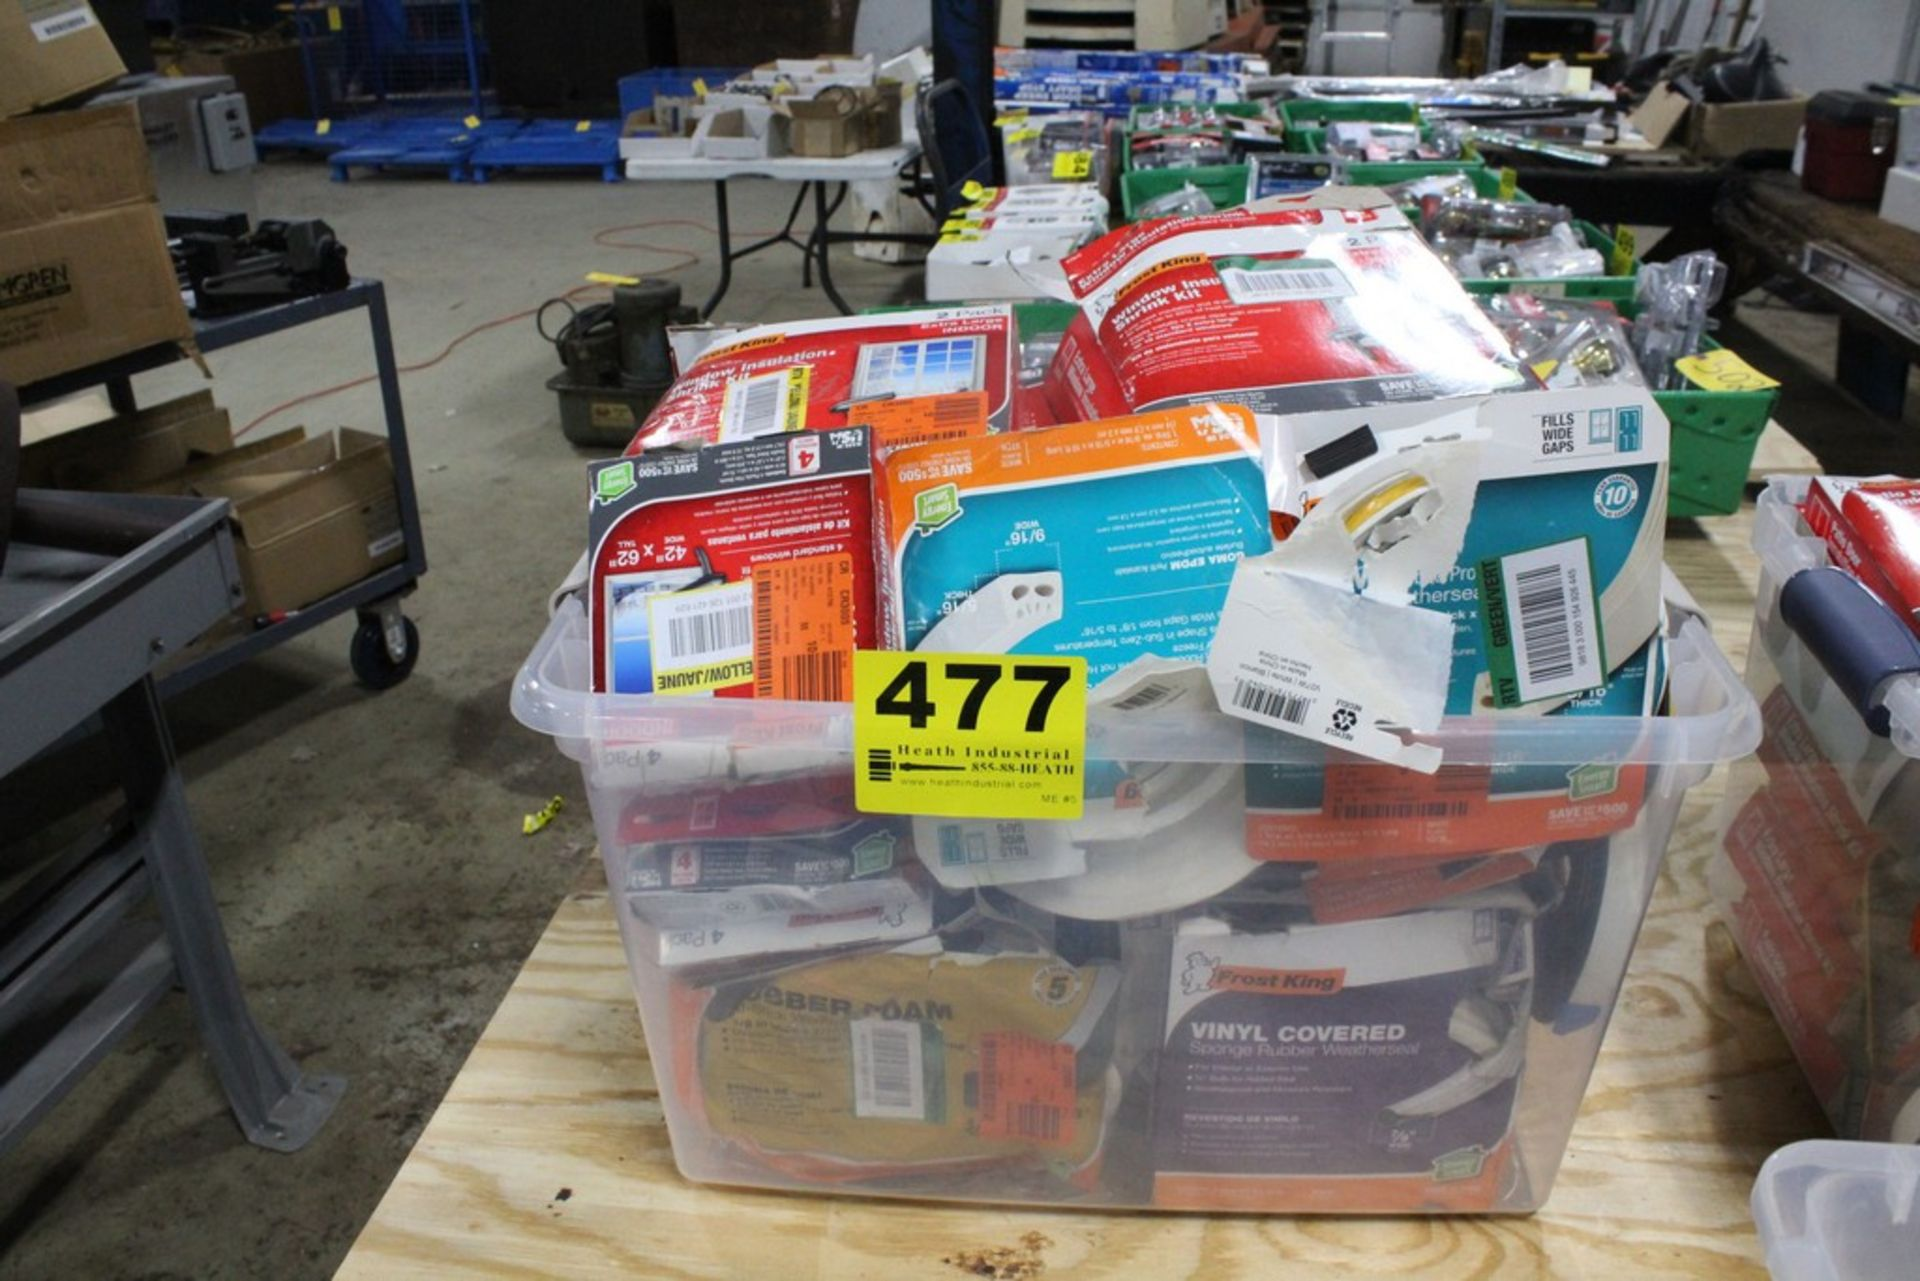 Lot 477 - LARGE ASSORTMENT OF WINDOW INSULATION SUPPLIES IN TOTE